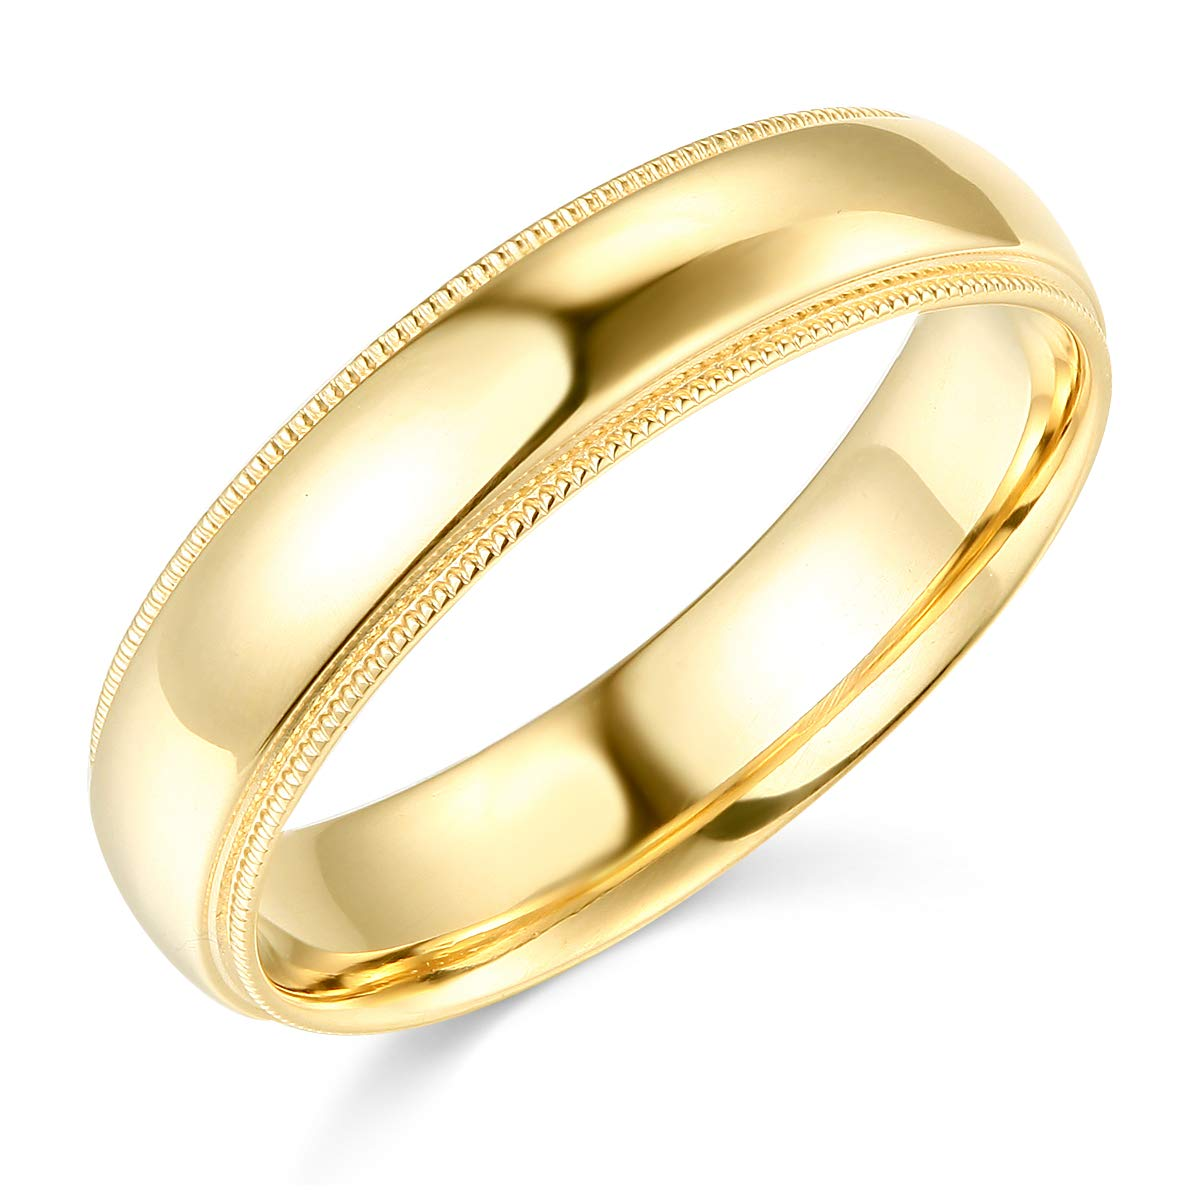 Wellingsale 14k Yellow White Gold Solid 5mm COMFORT FIT Milgrain Traditional Wedding Band Ring OR